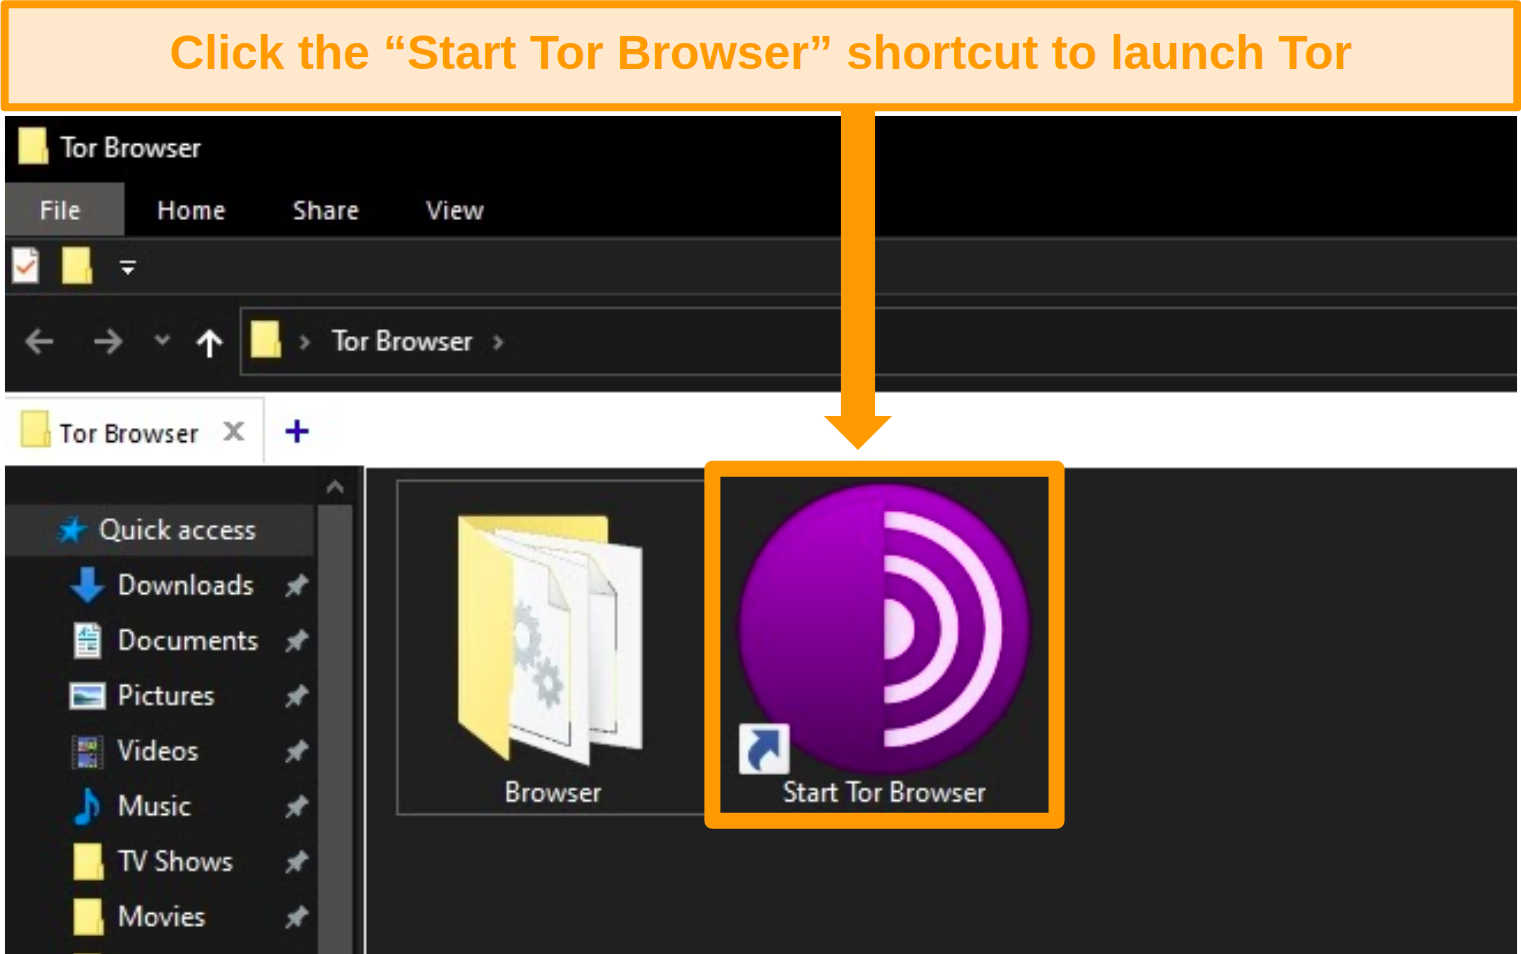 Screenshot of Tor browser installation shortcut on Windows